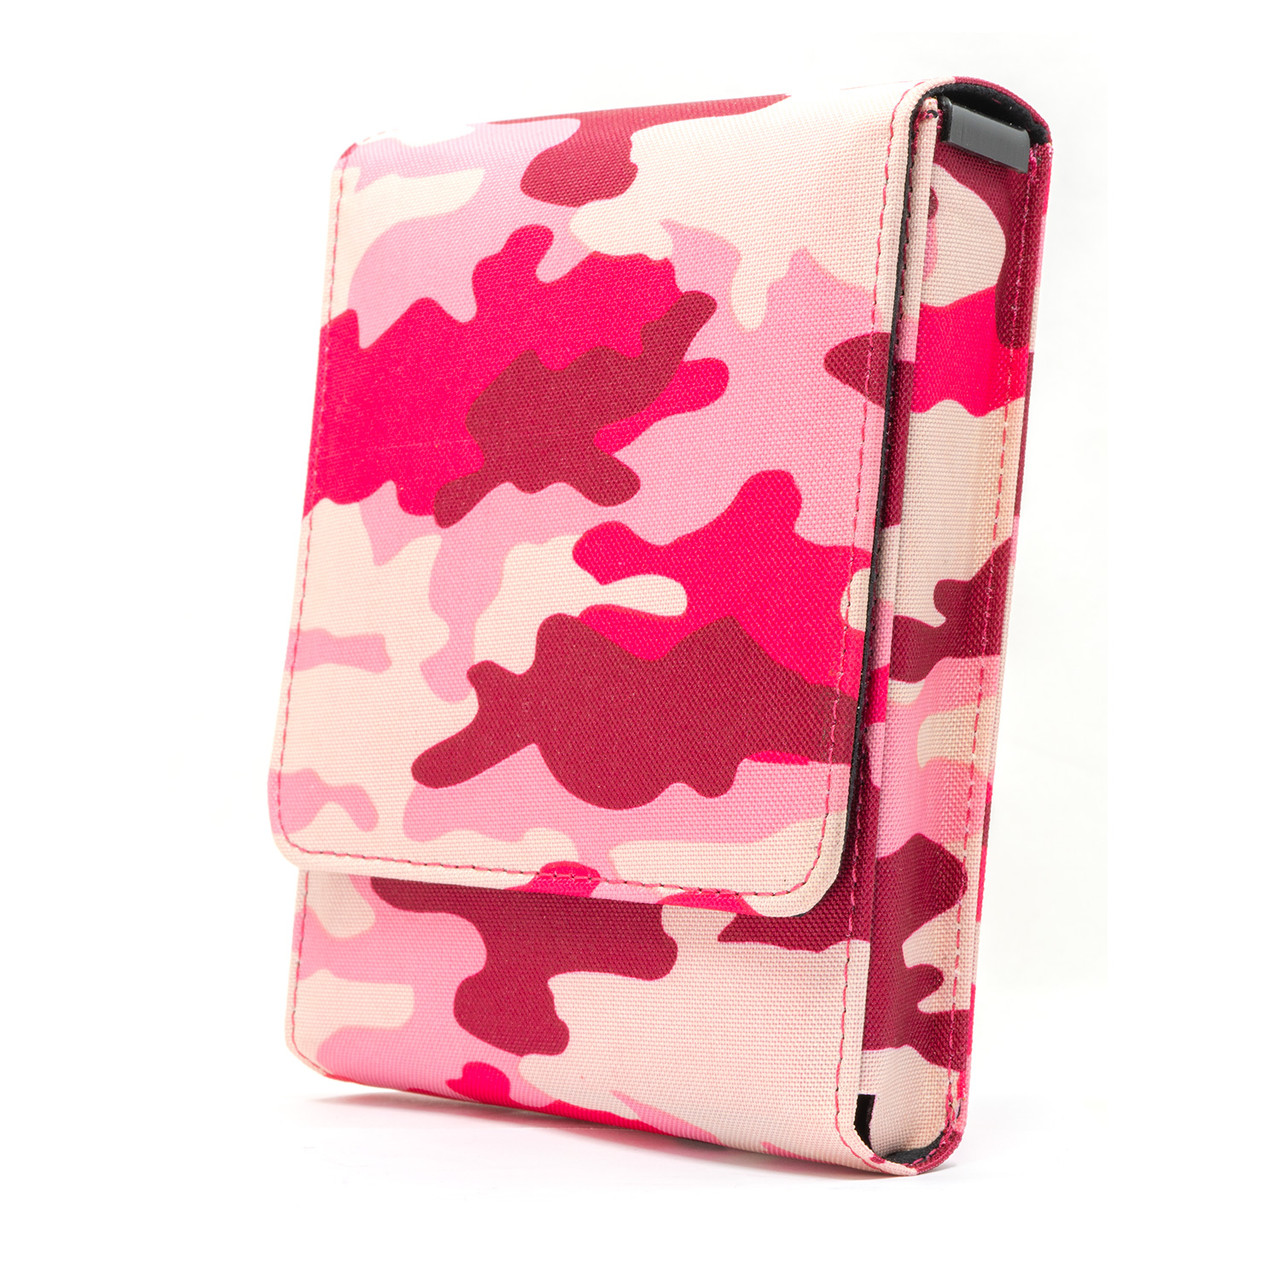 Ruger Security 9 Compact Pink Camouflage Series Holster